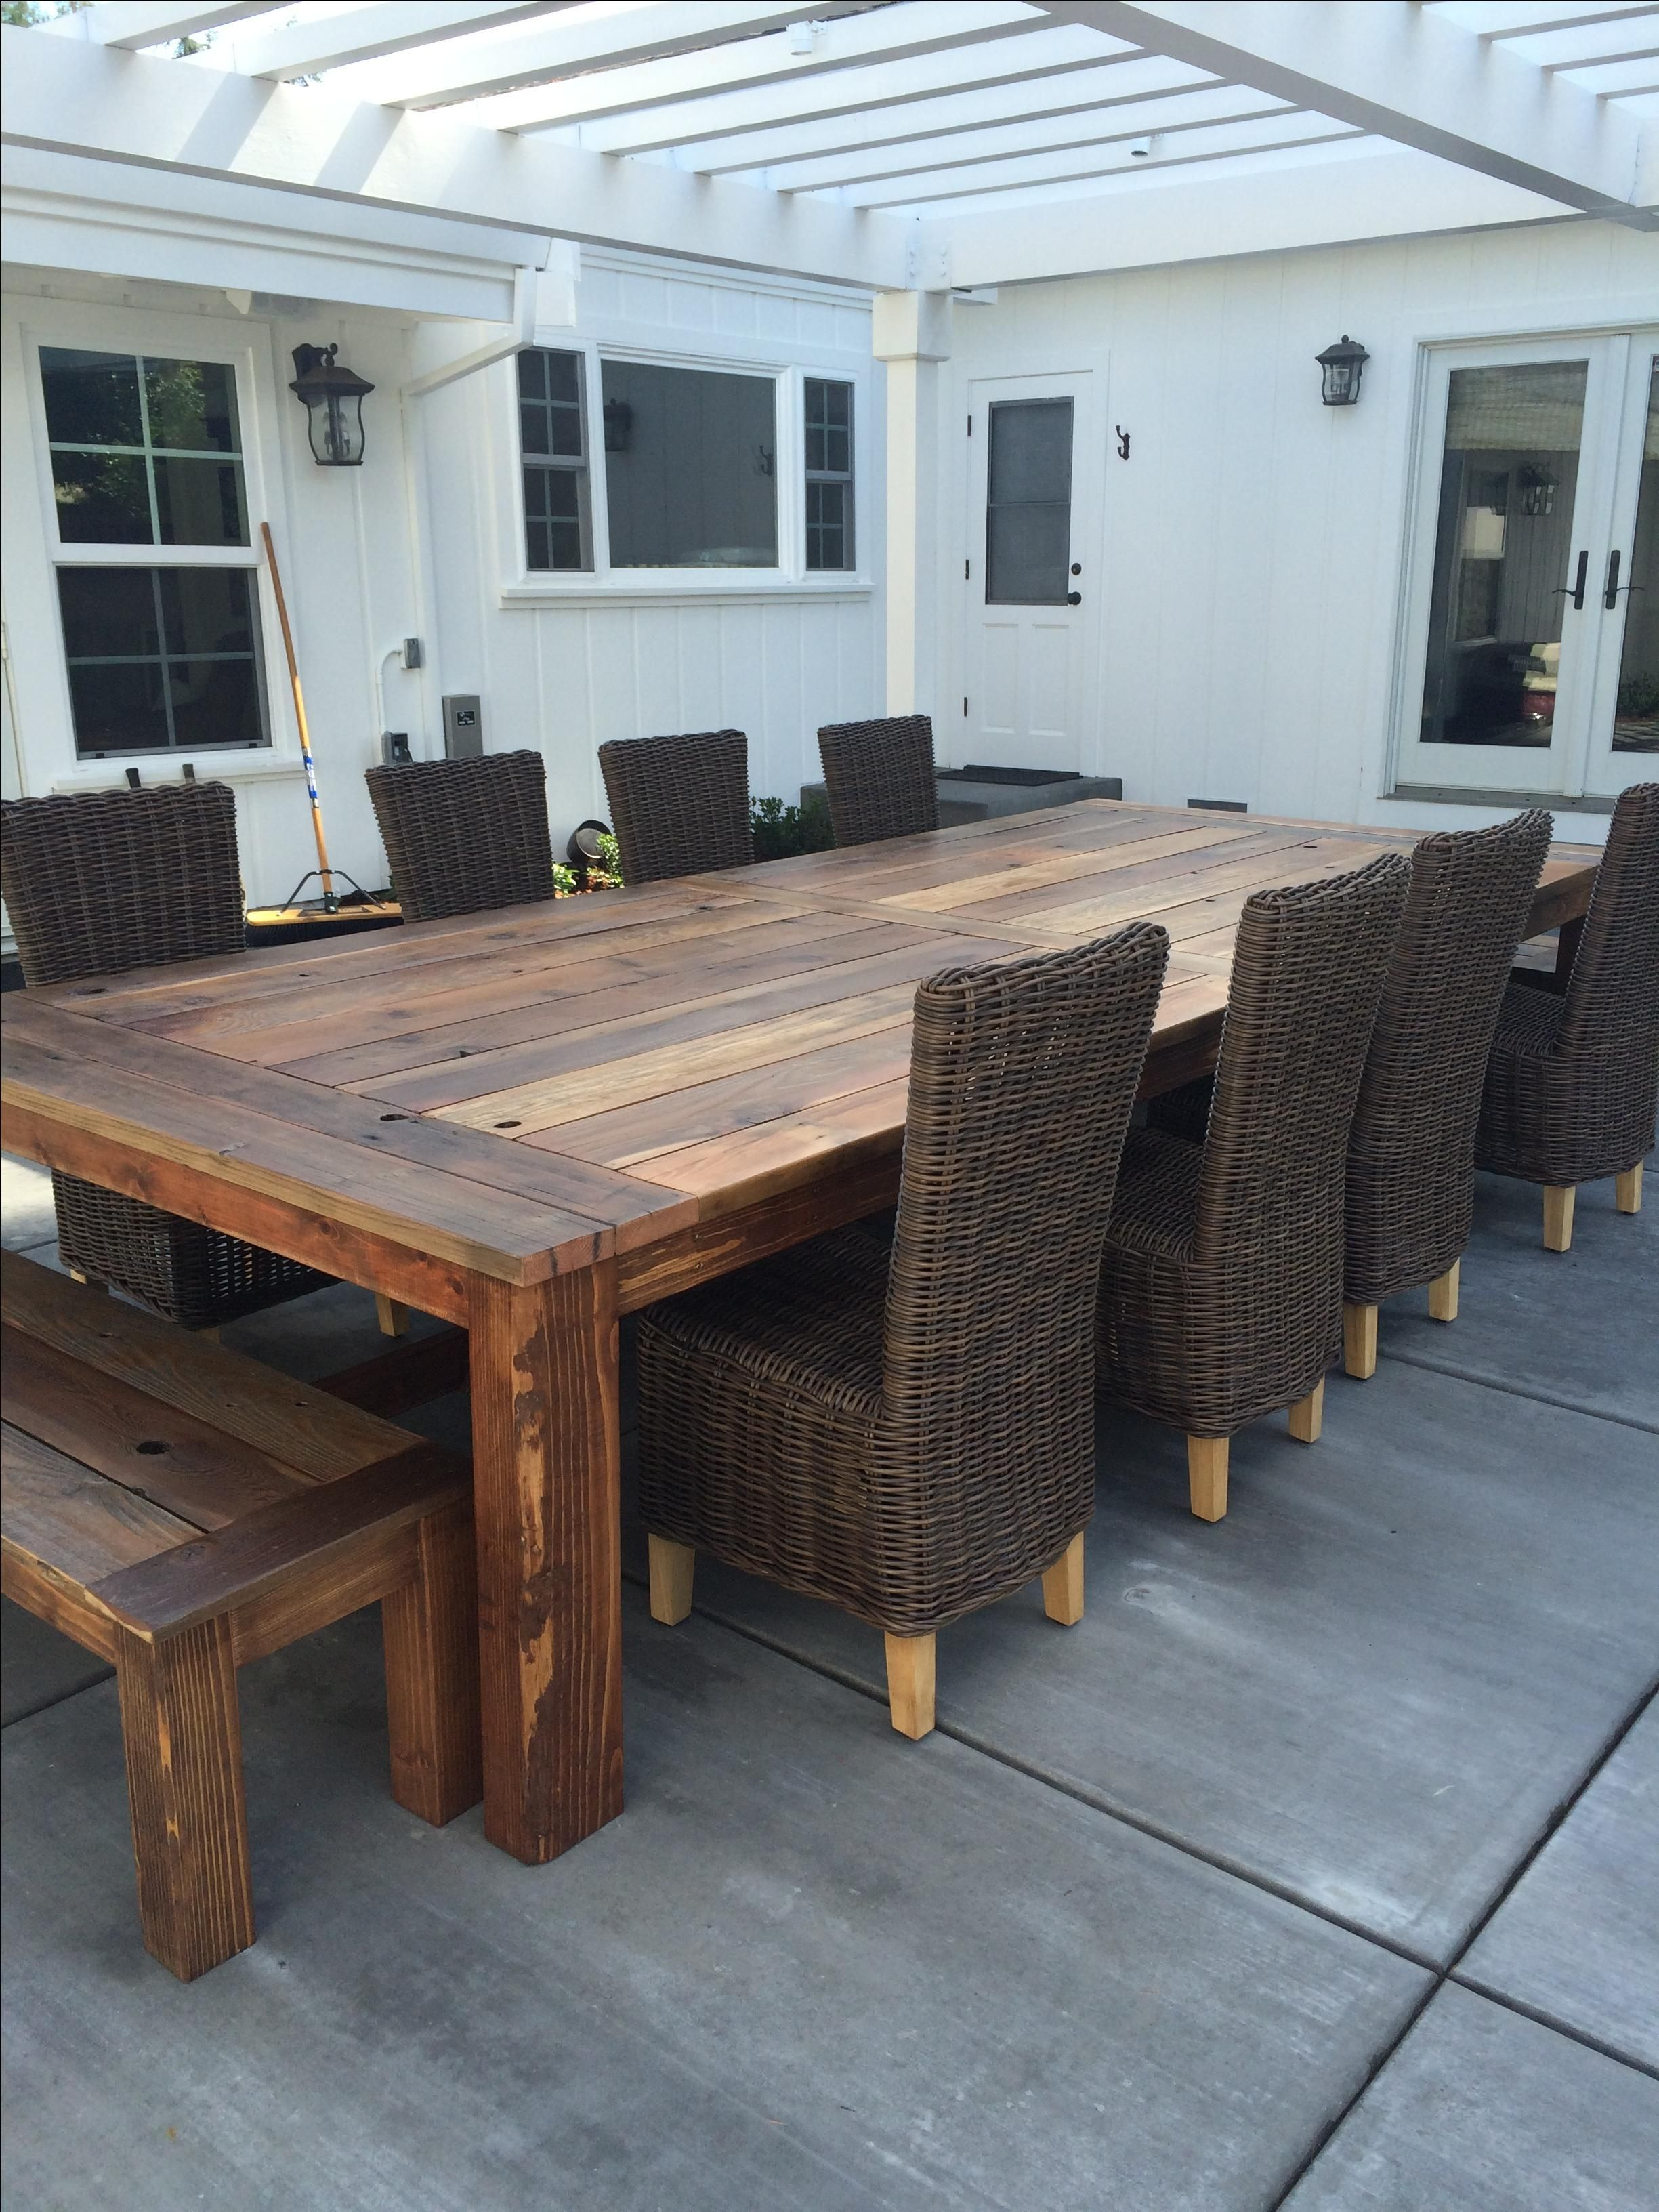 Reclaimed Wood Farm Table   Outdoor Or Indoor  by B Dronkers. Custom Outdoor Furniture   CustomMade com